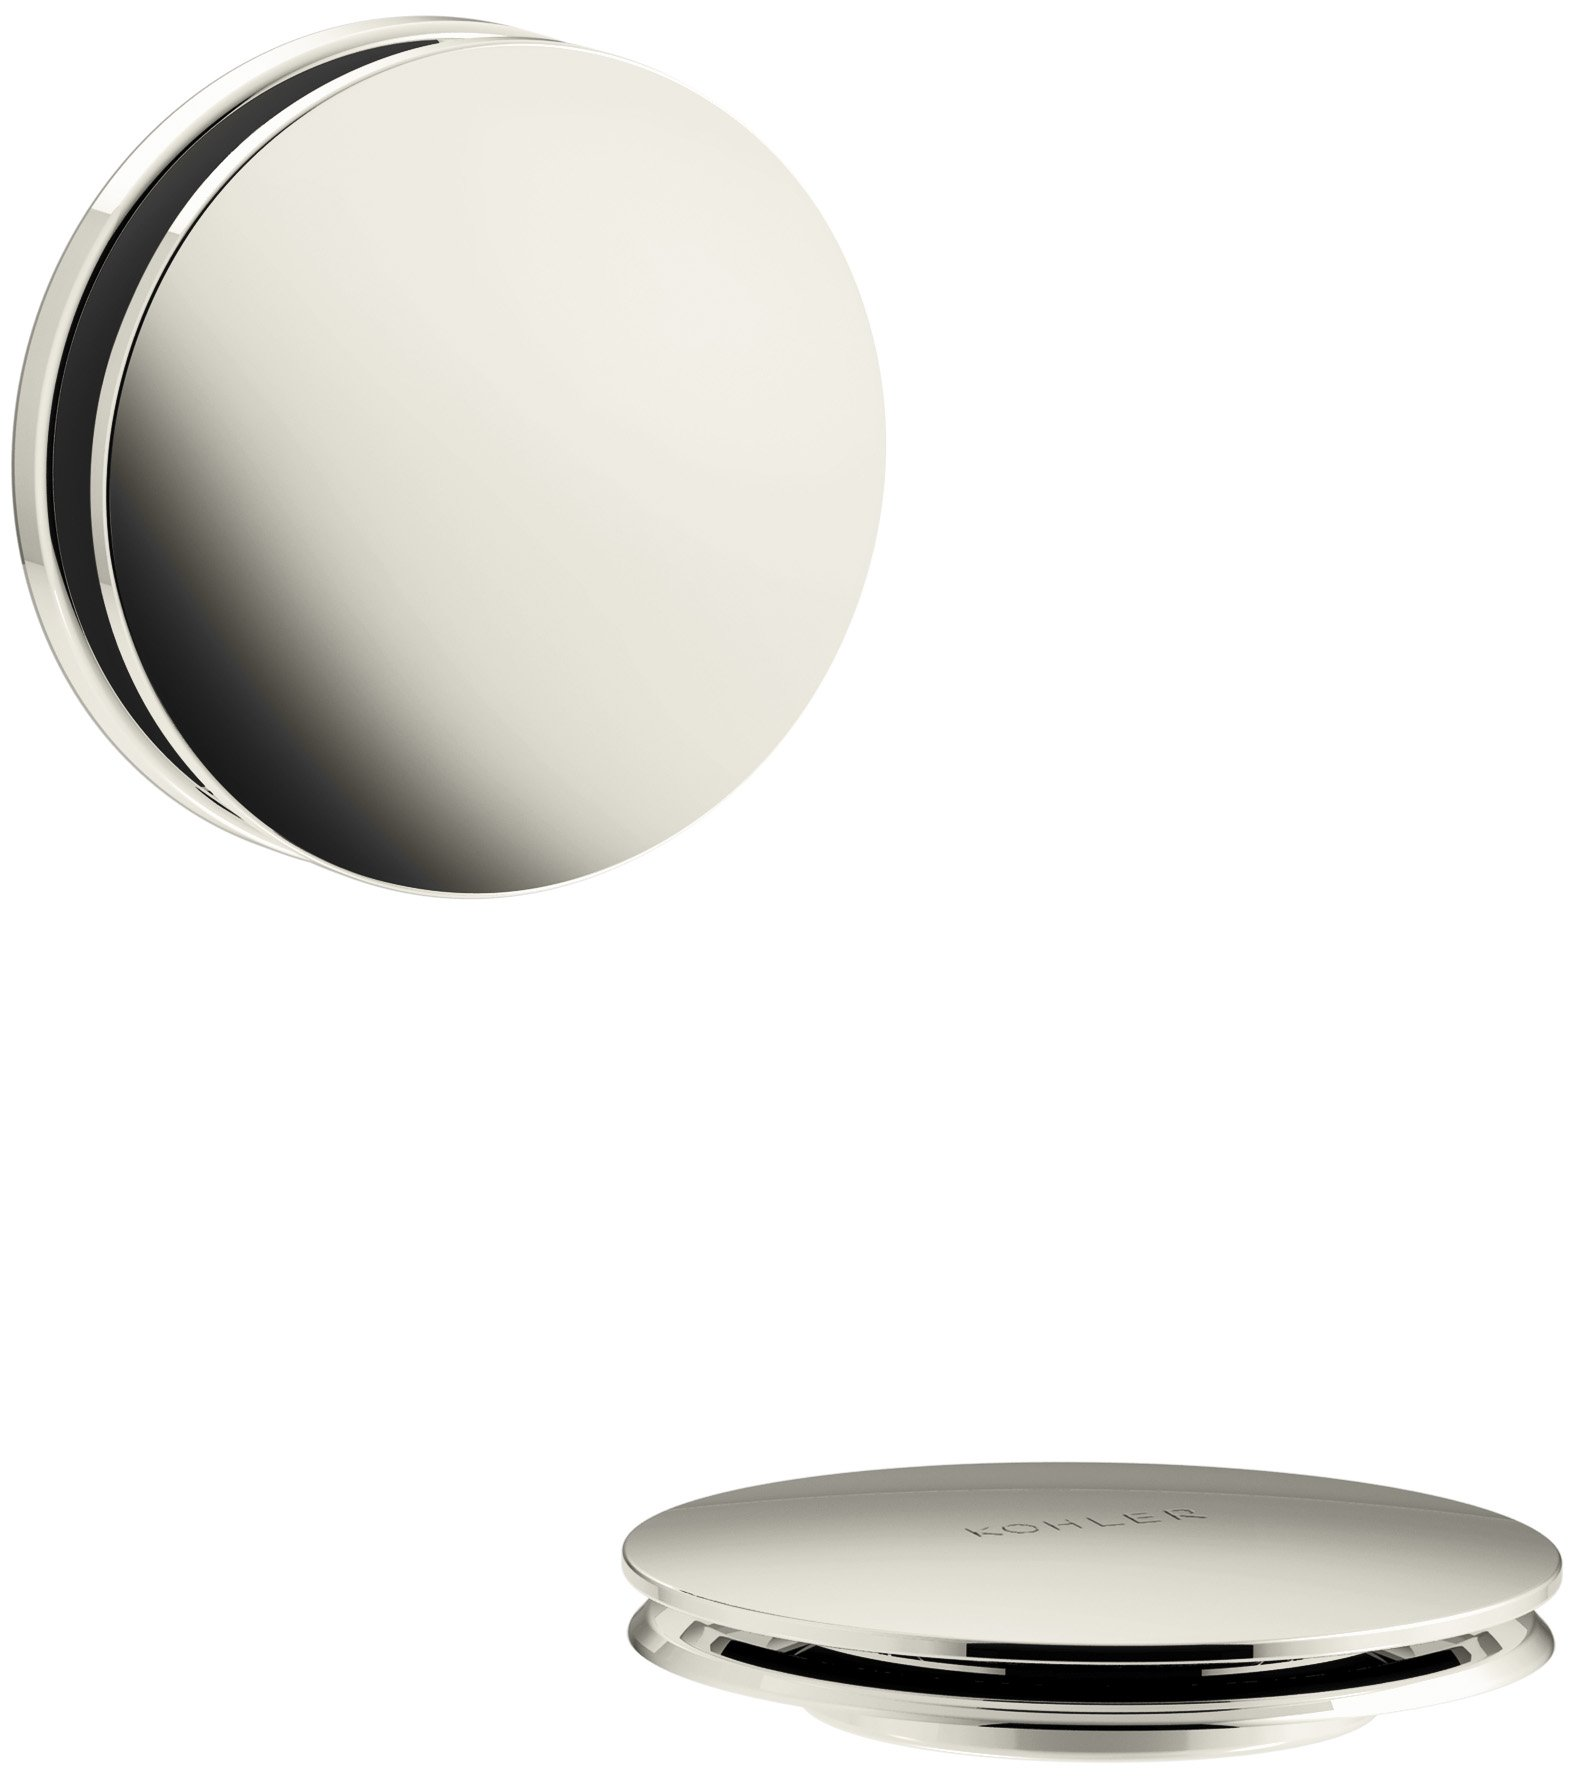 KOHLER K-T37395-SN PureFlo Cable Bath Drain Trim with Contemporary Push Button Handle, Vibrant Polished Nickel